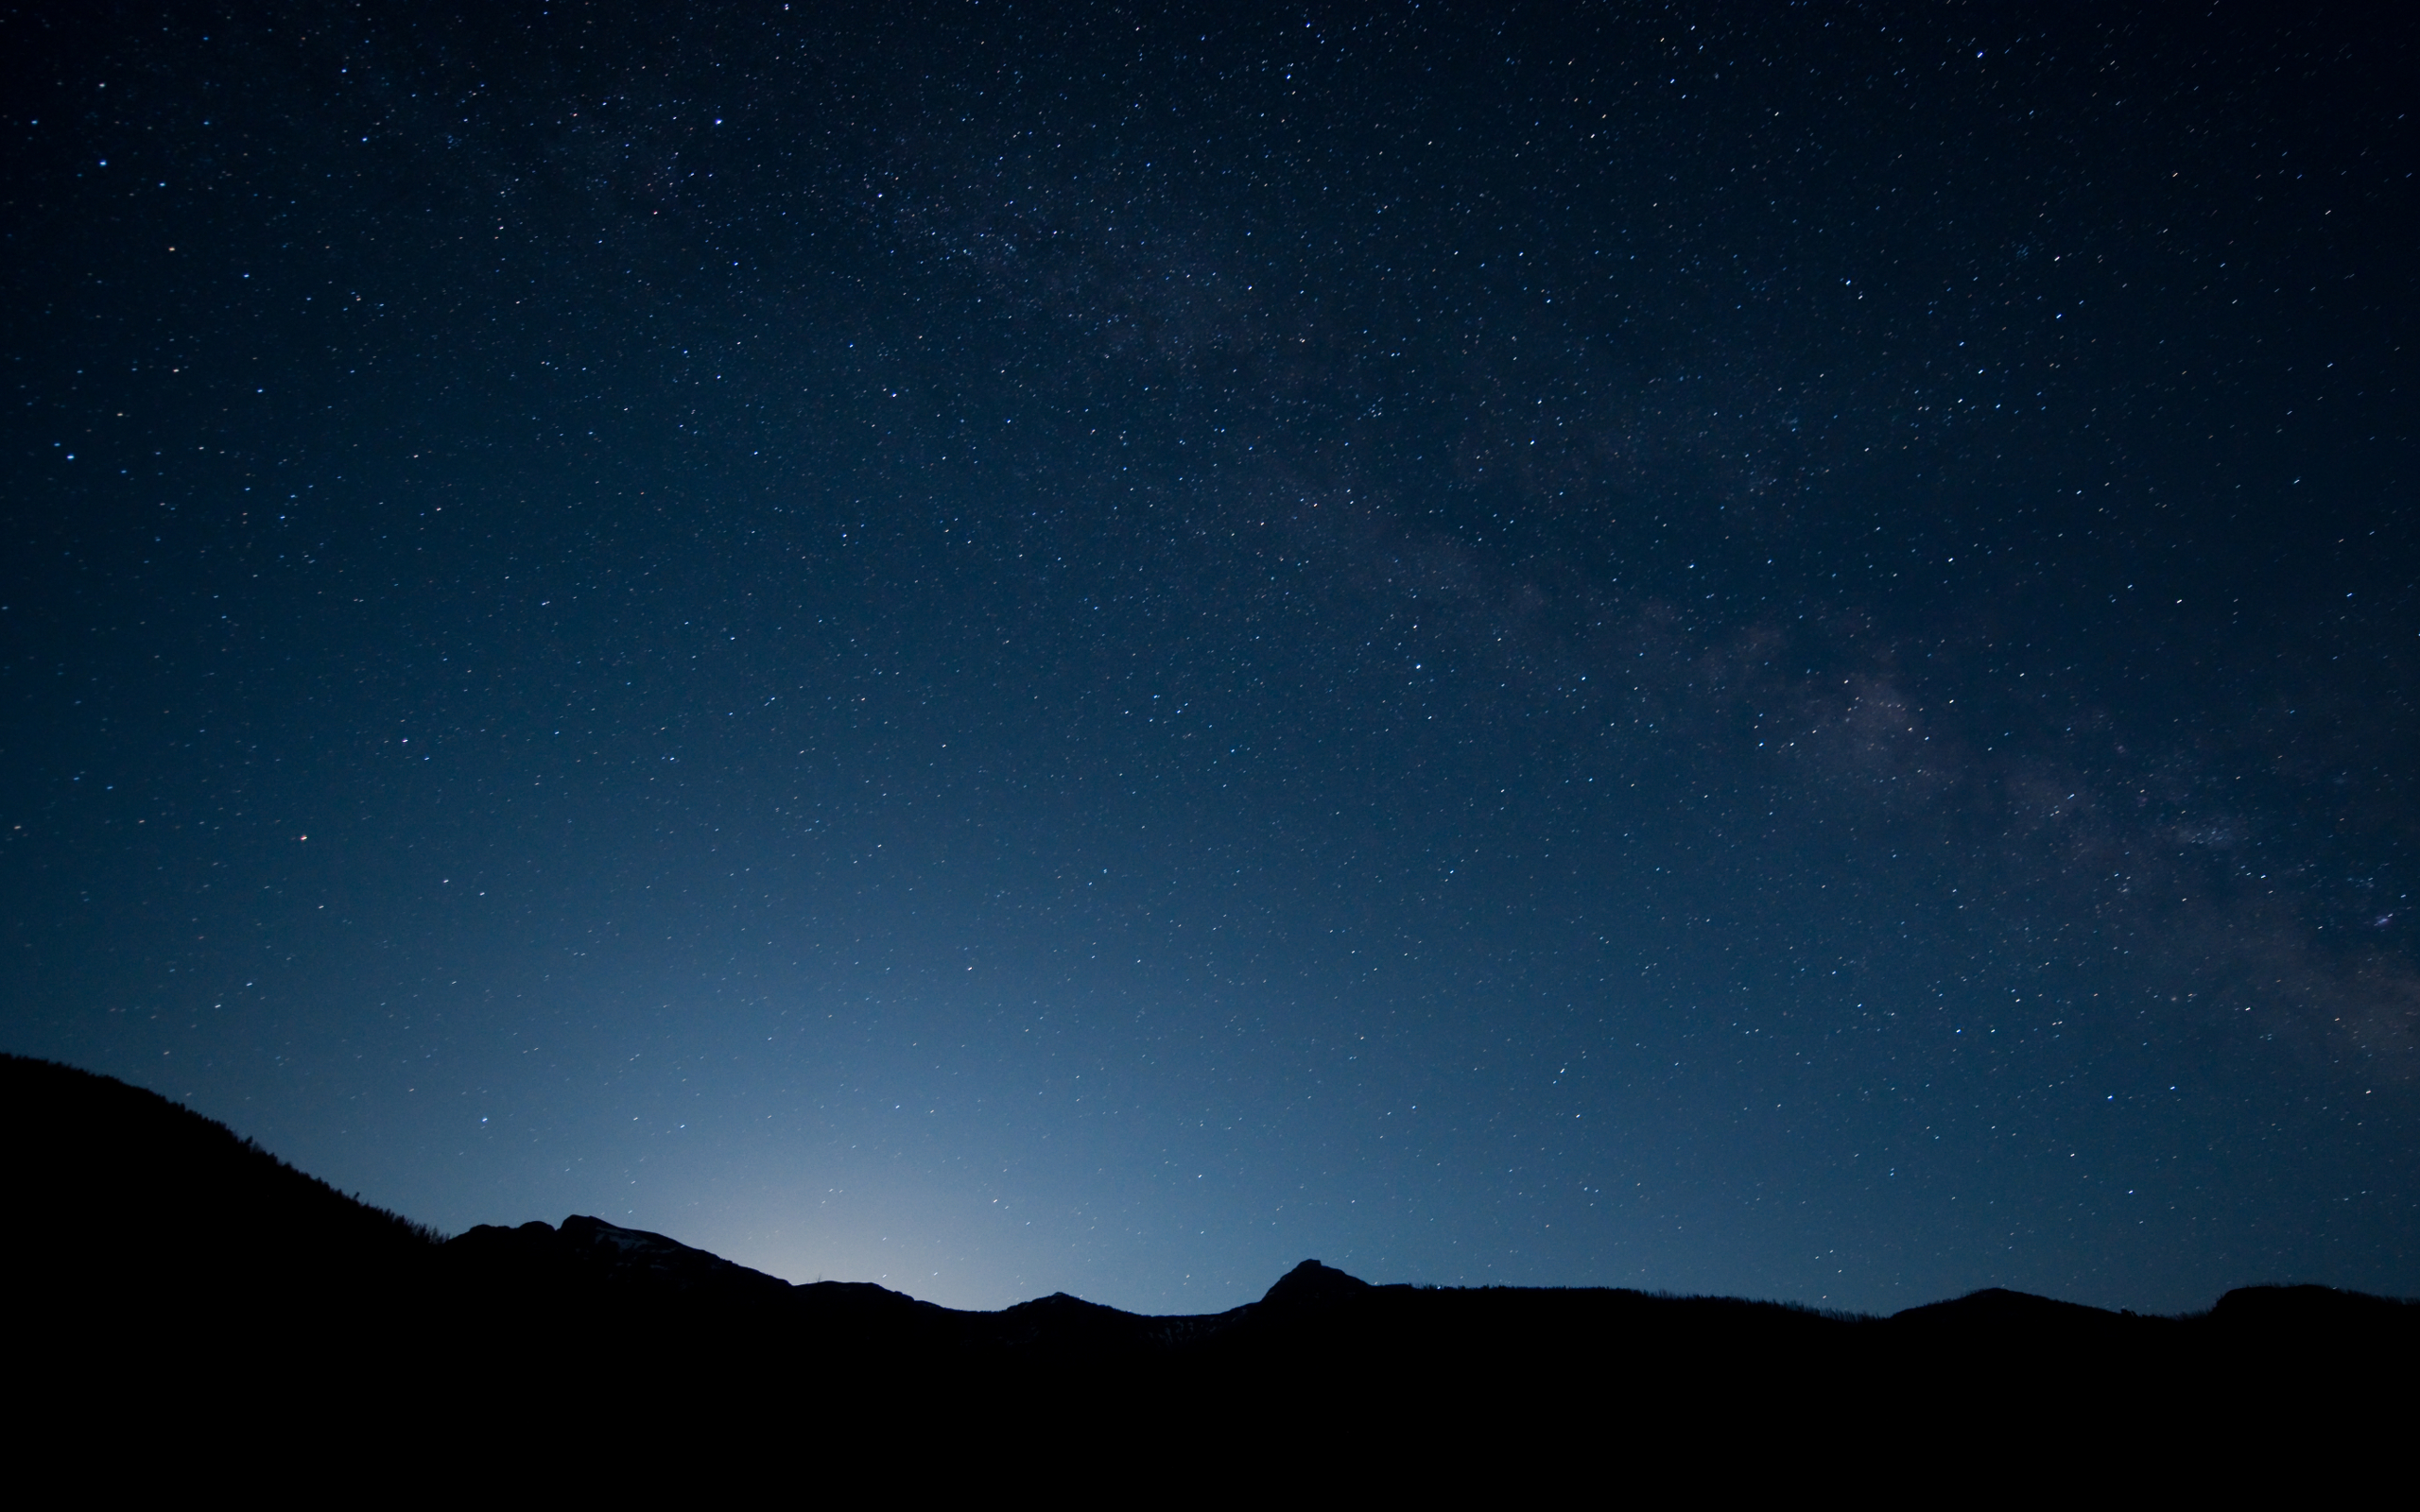 sky wallpaper night sky hd widescreen and normal resolution wallpaper 2560x1600